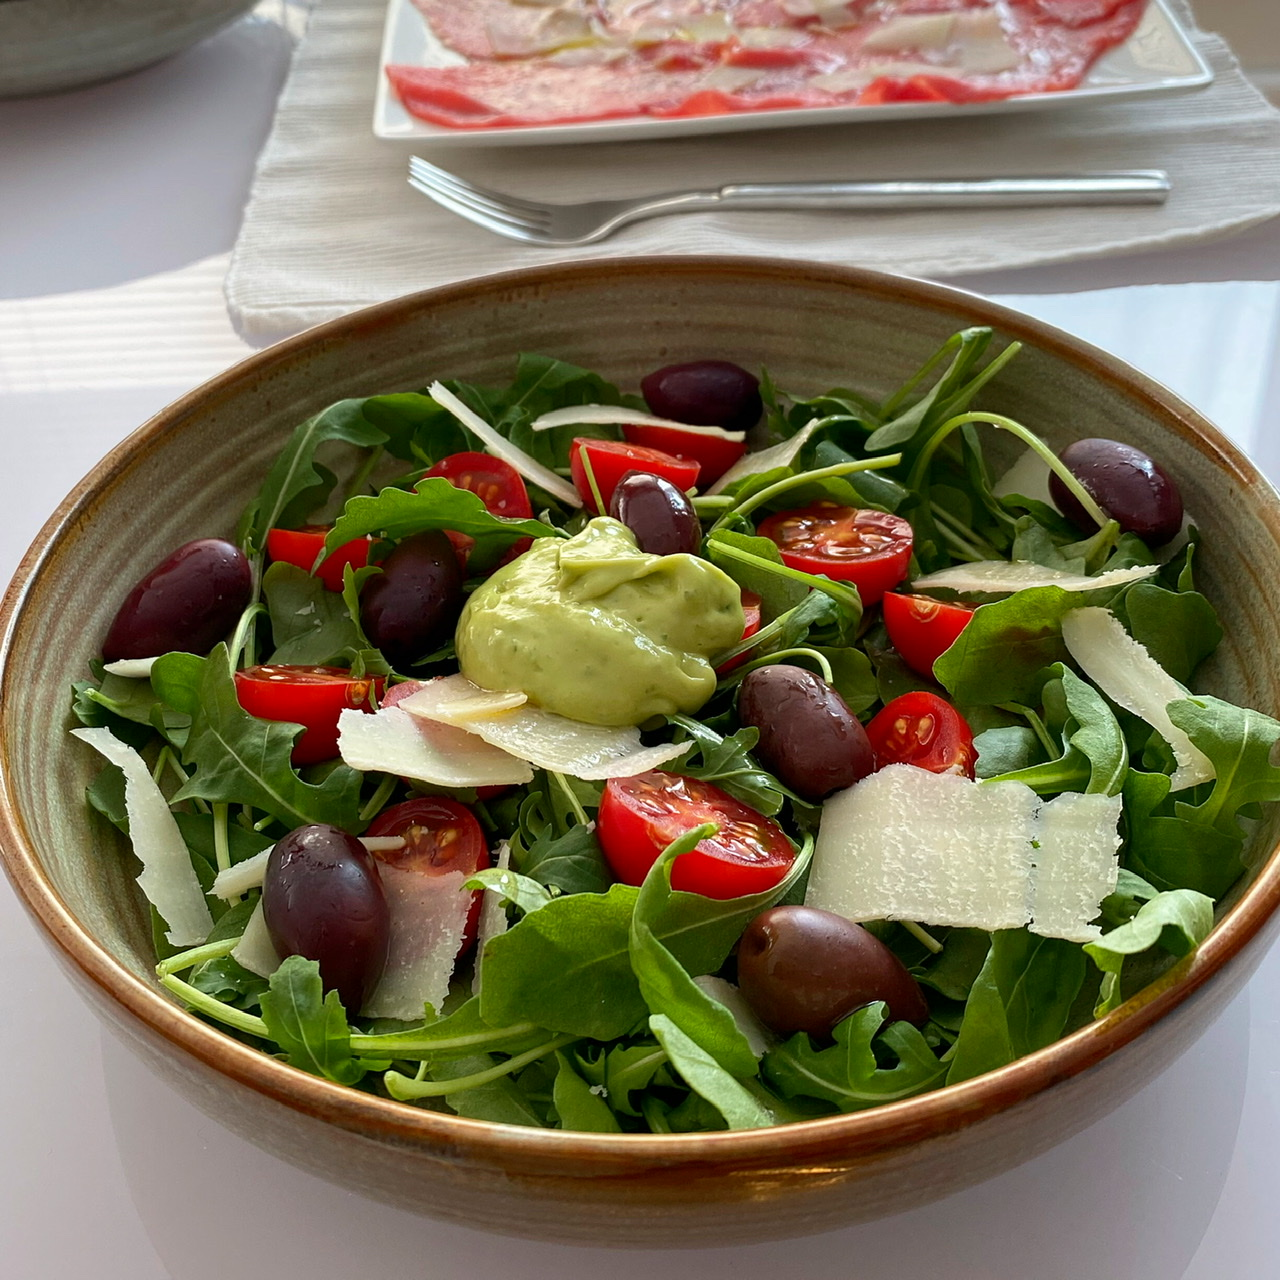 Arugula Salad with Avocado Citrus Vinaigrette